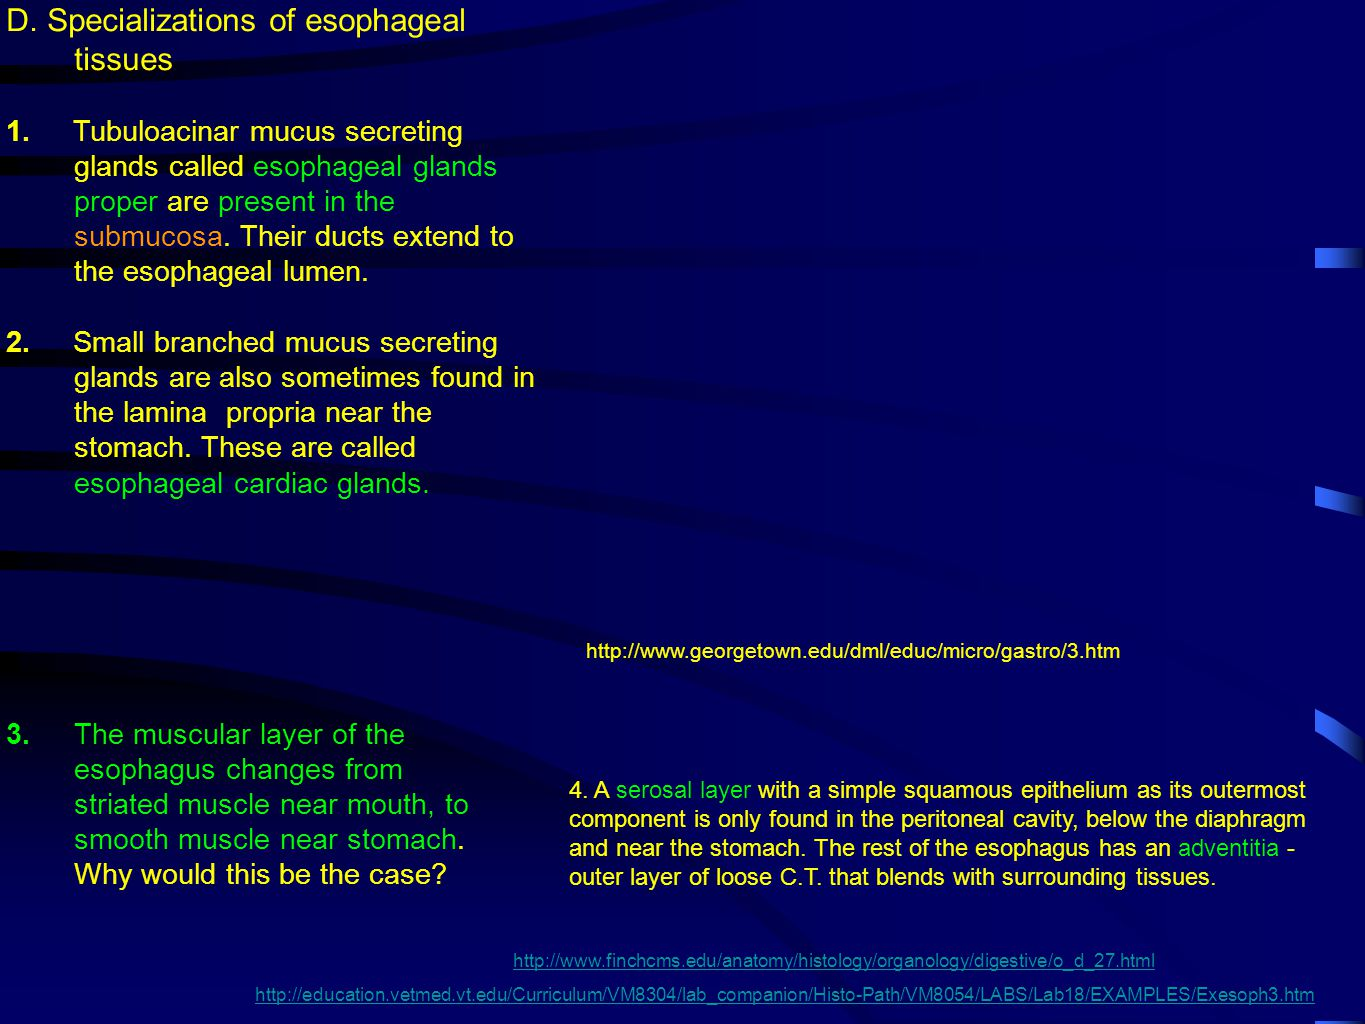 D. Specializations of esophageal tissues